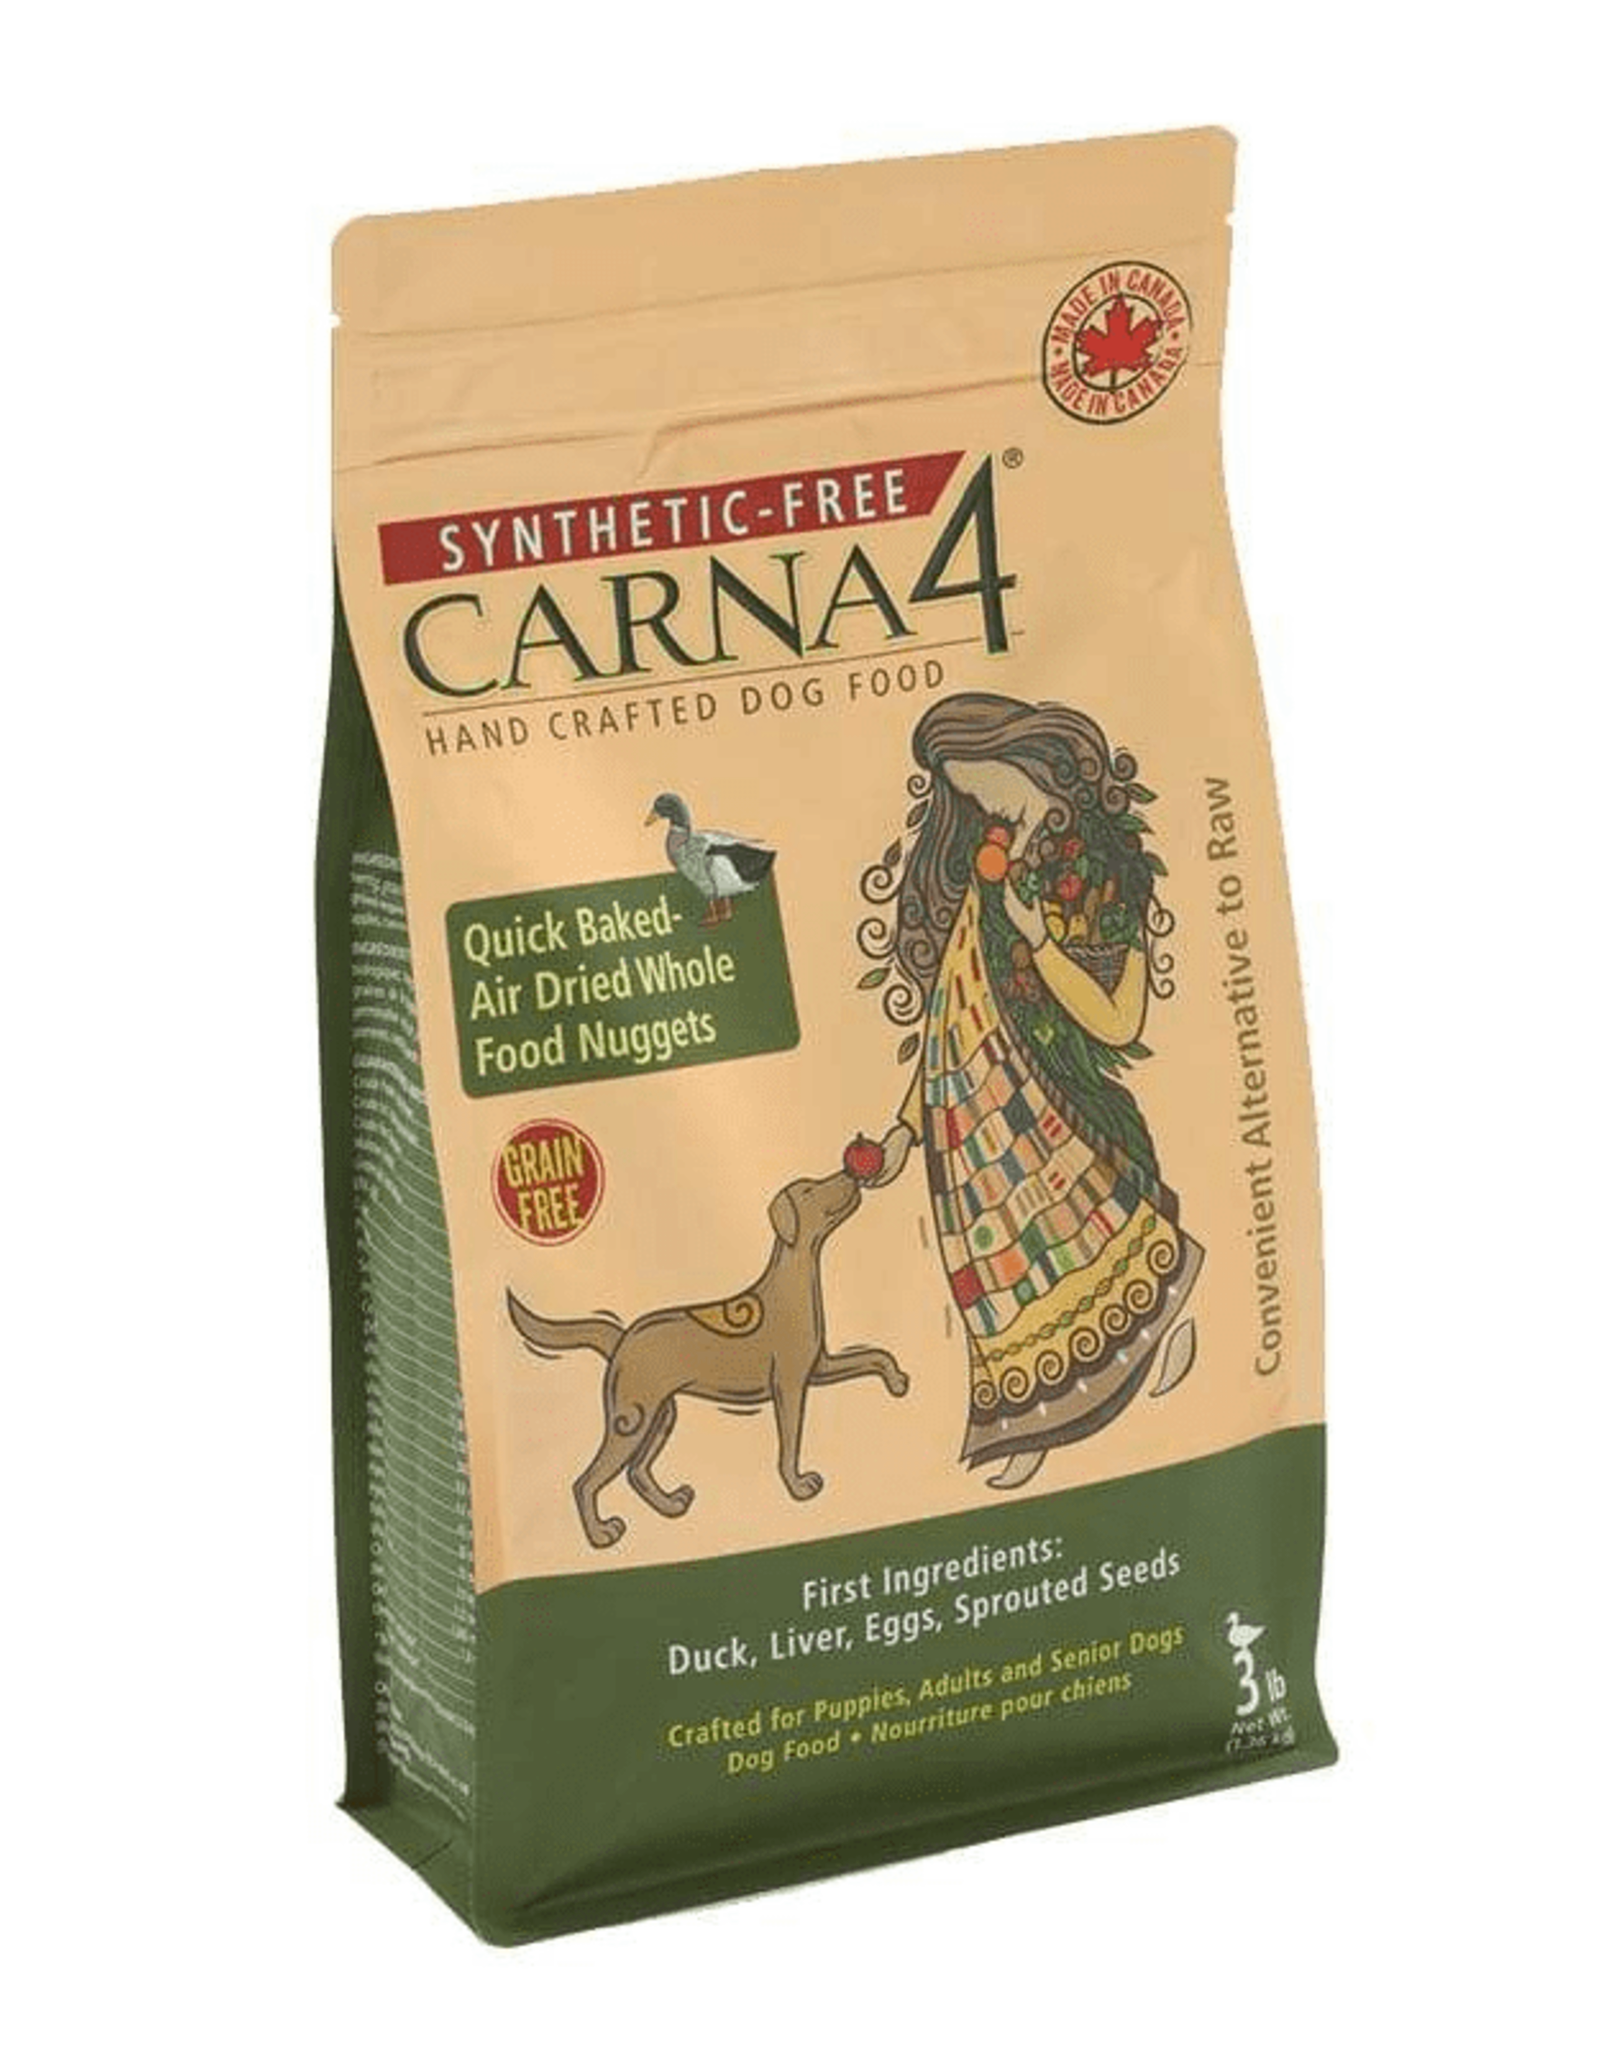 Carna4 Carna4 Dog Food Duck 3lbs